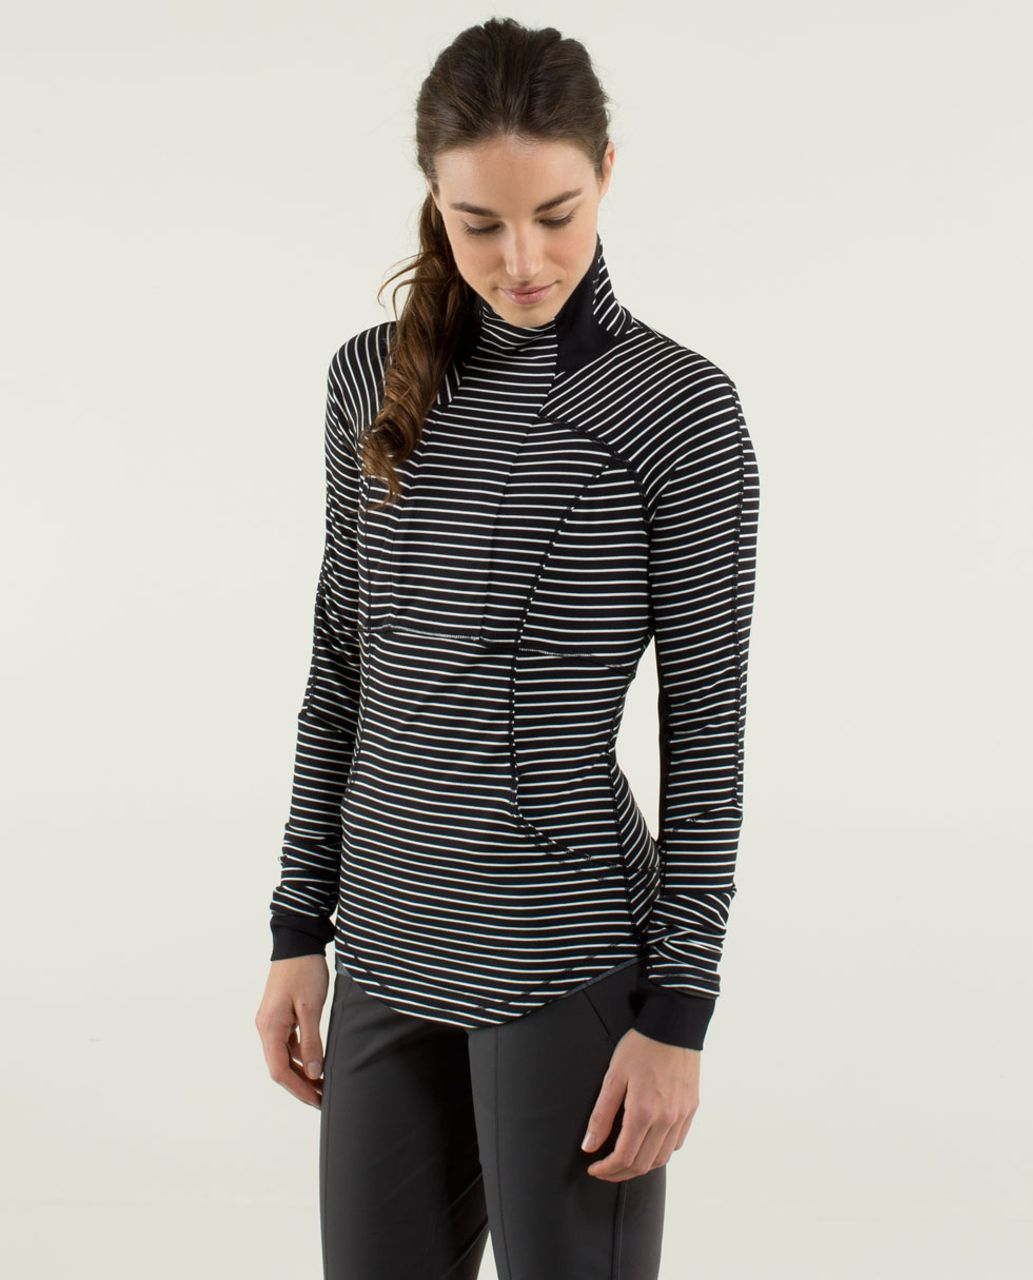 Lululemon Base Runner 1/2 Zip - Parallel Stripe Black White / Black